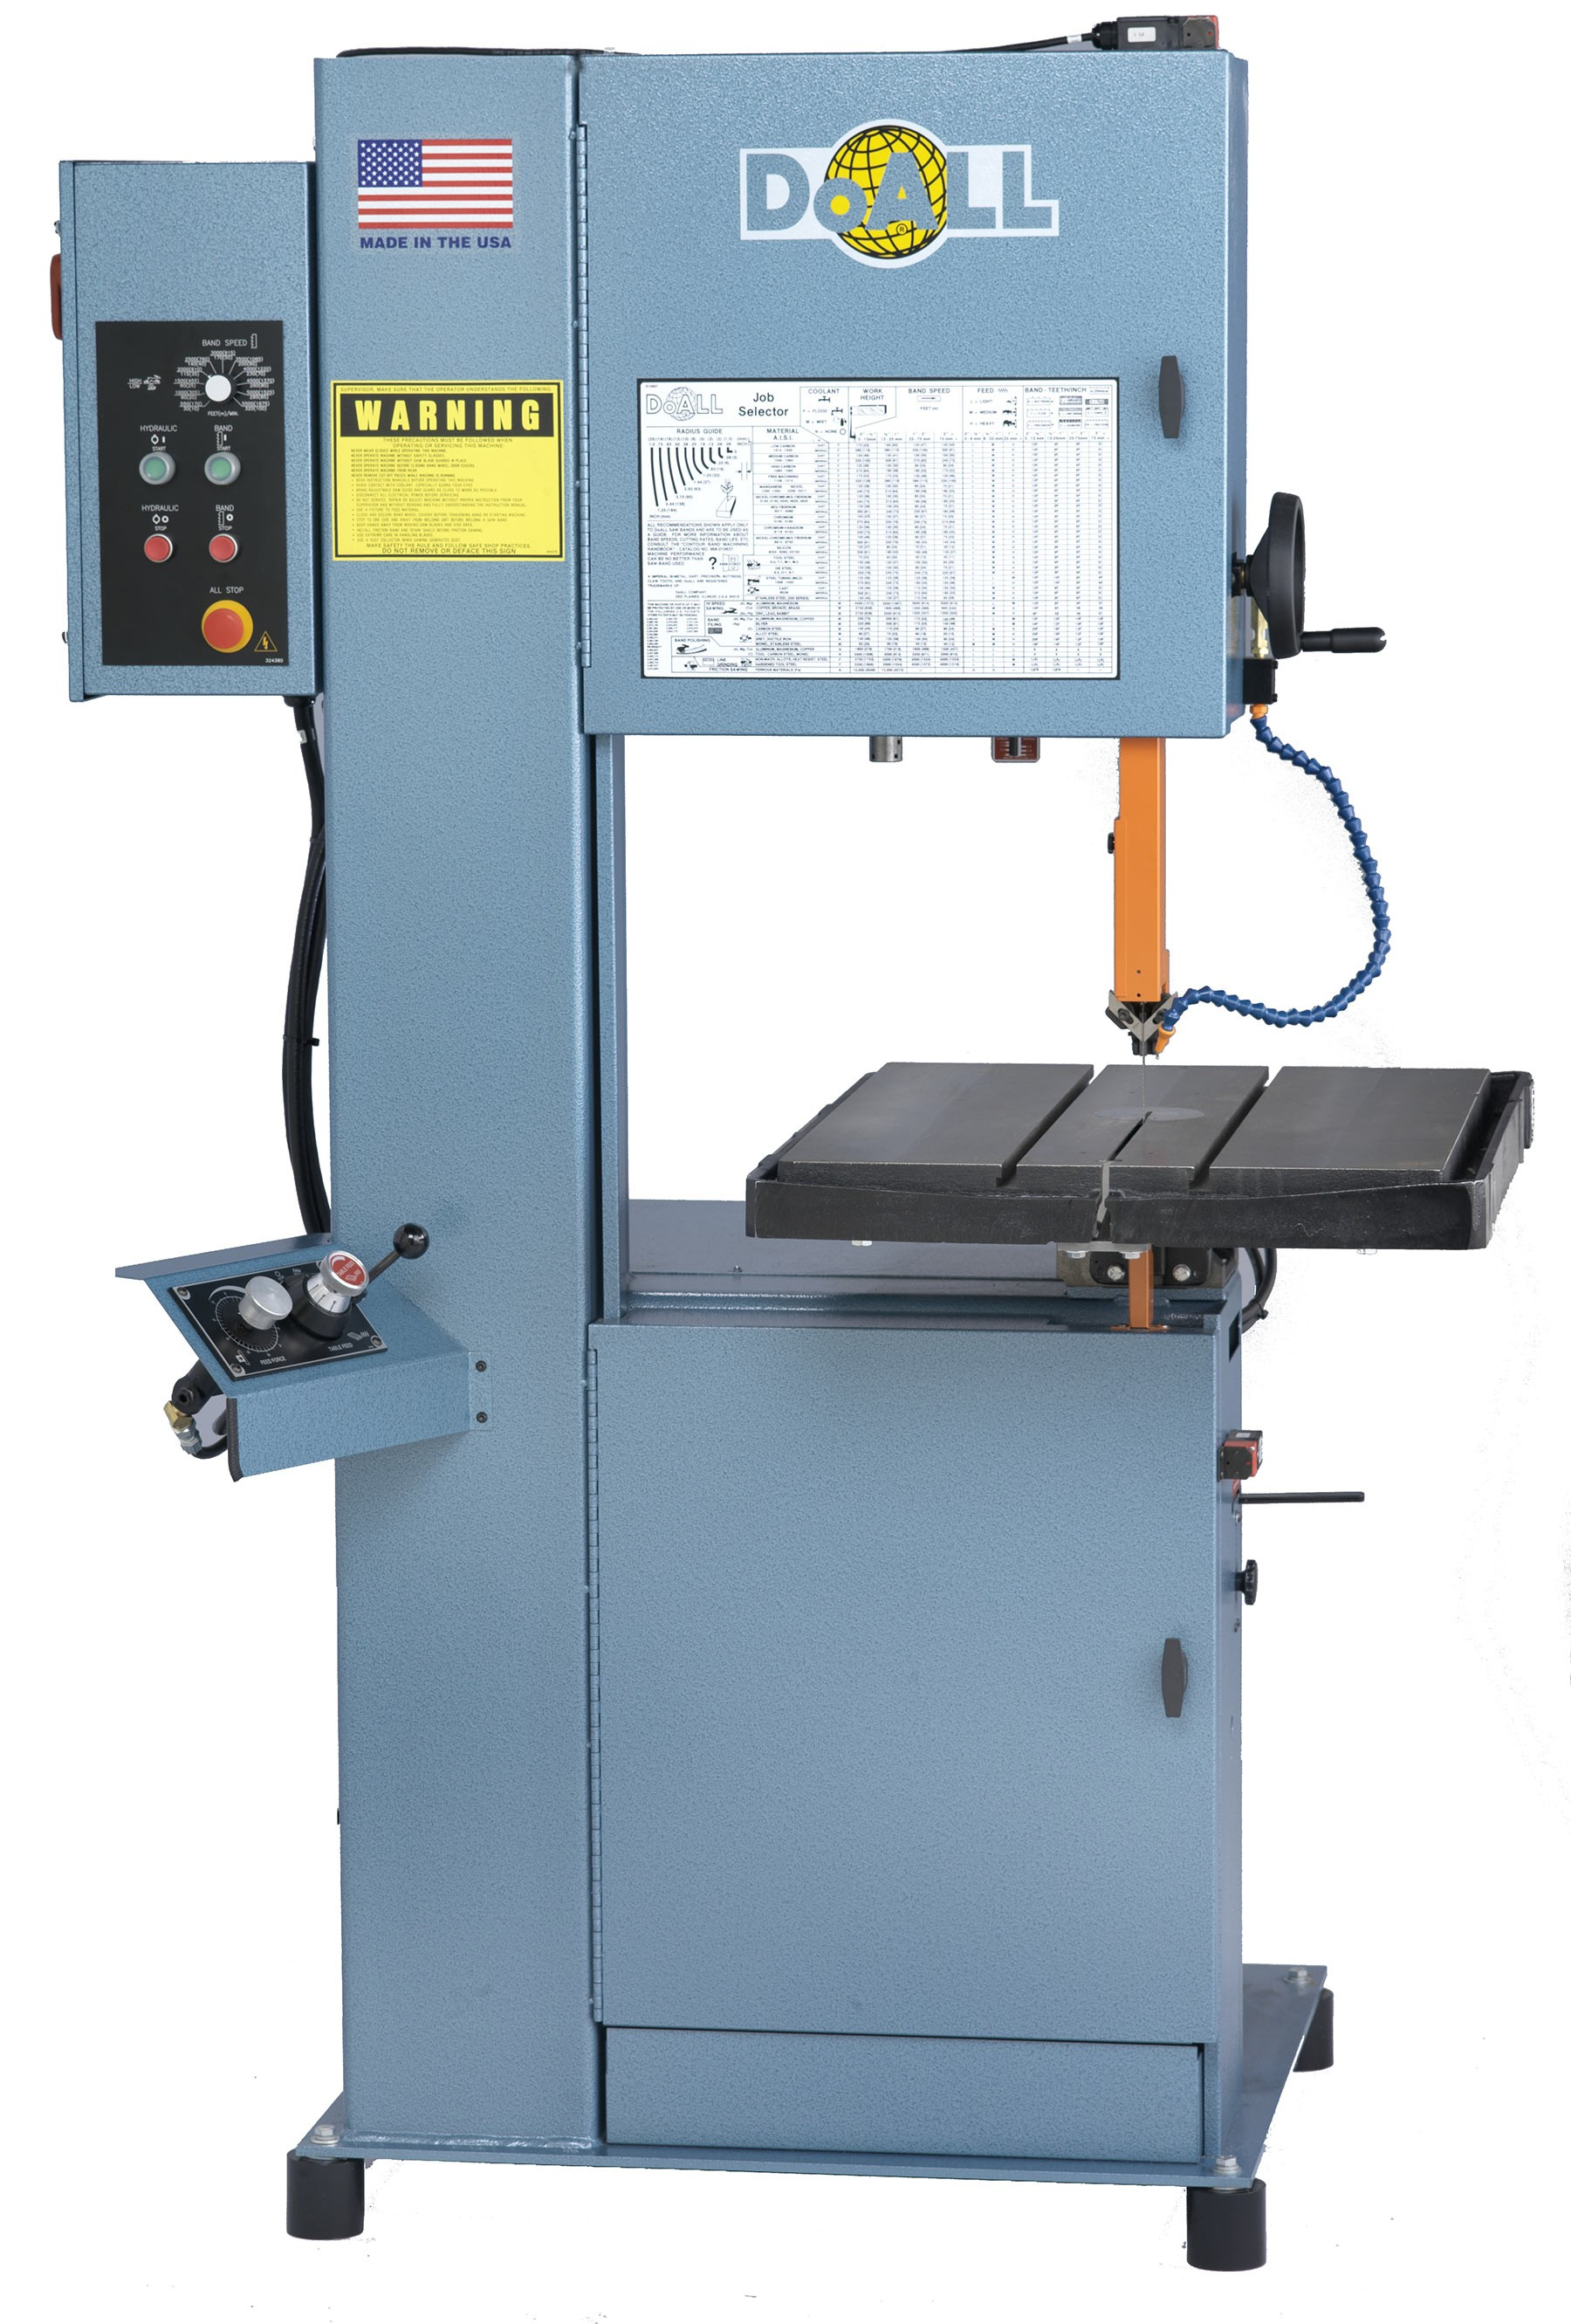 Vertical Concrete Saw Cutting Equipment : Doall vertical contour band saw vh elite metal tools